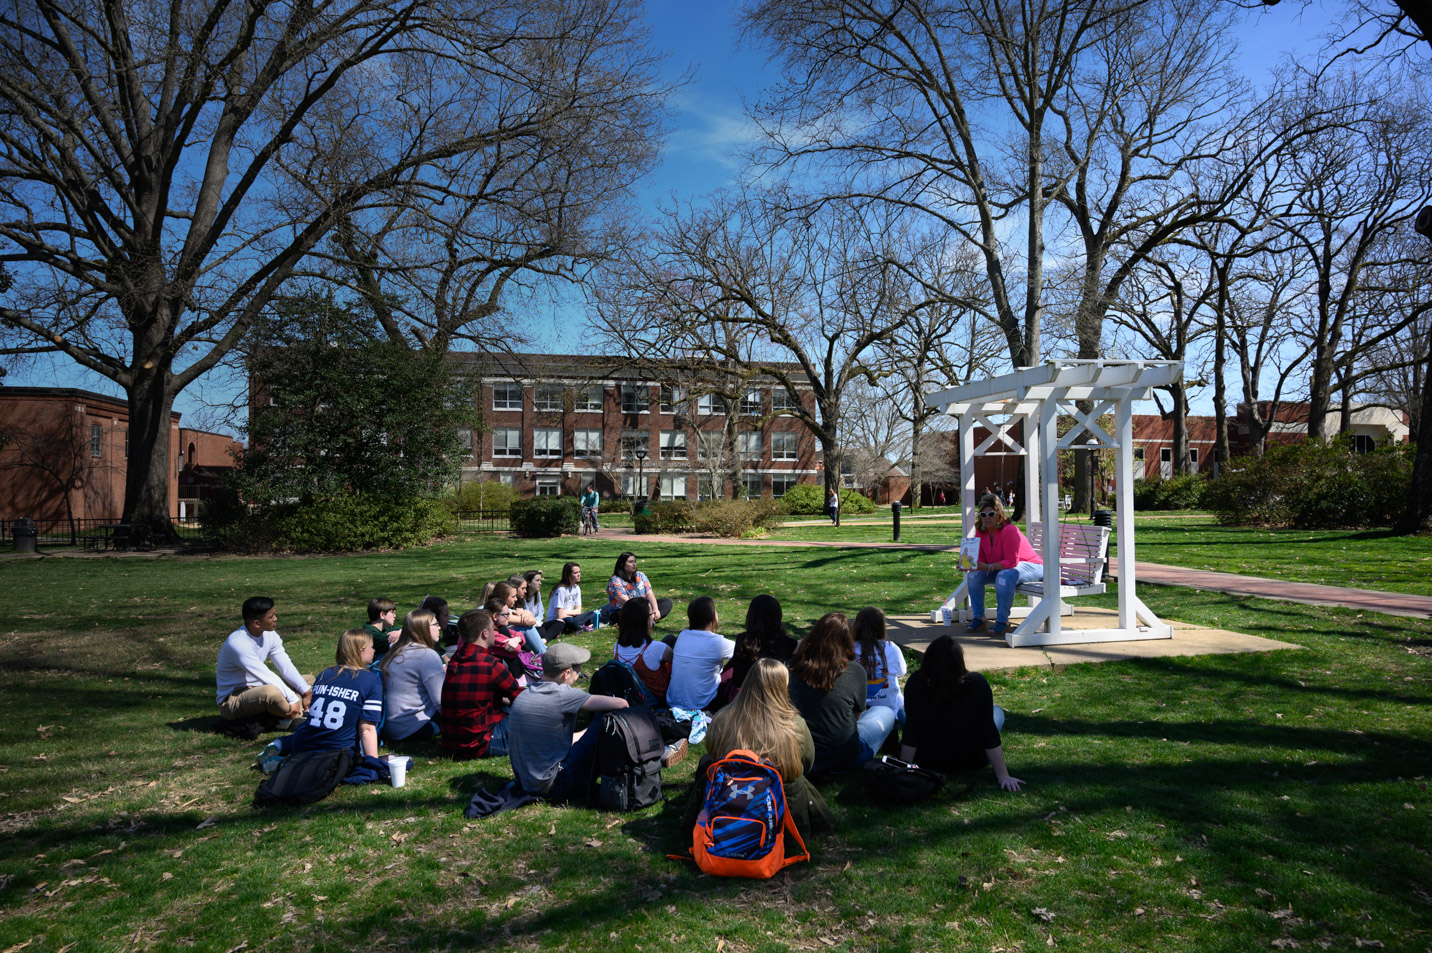 This is a photo of students meeting for class outside.